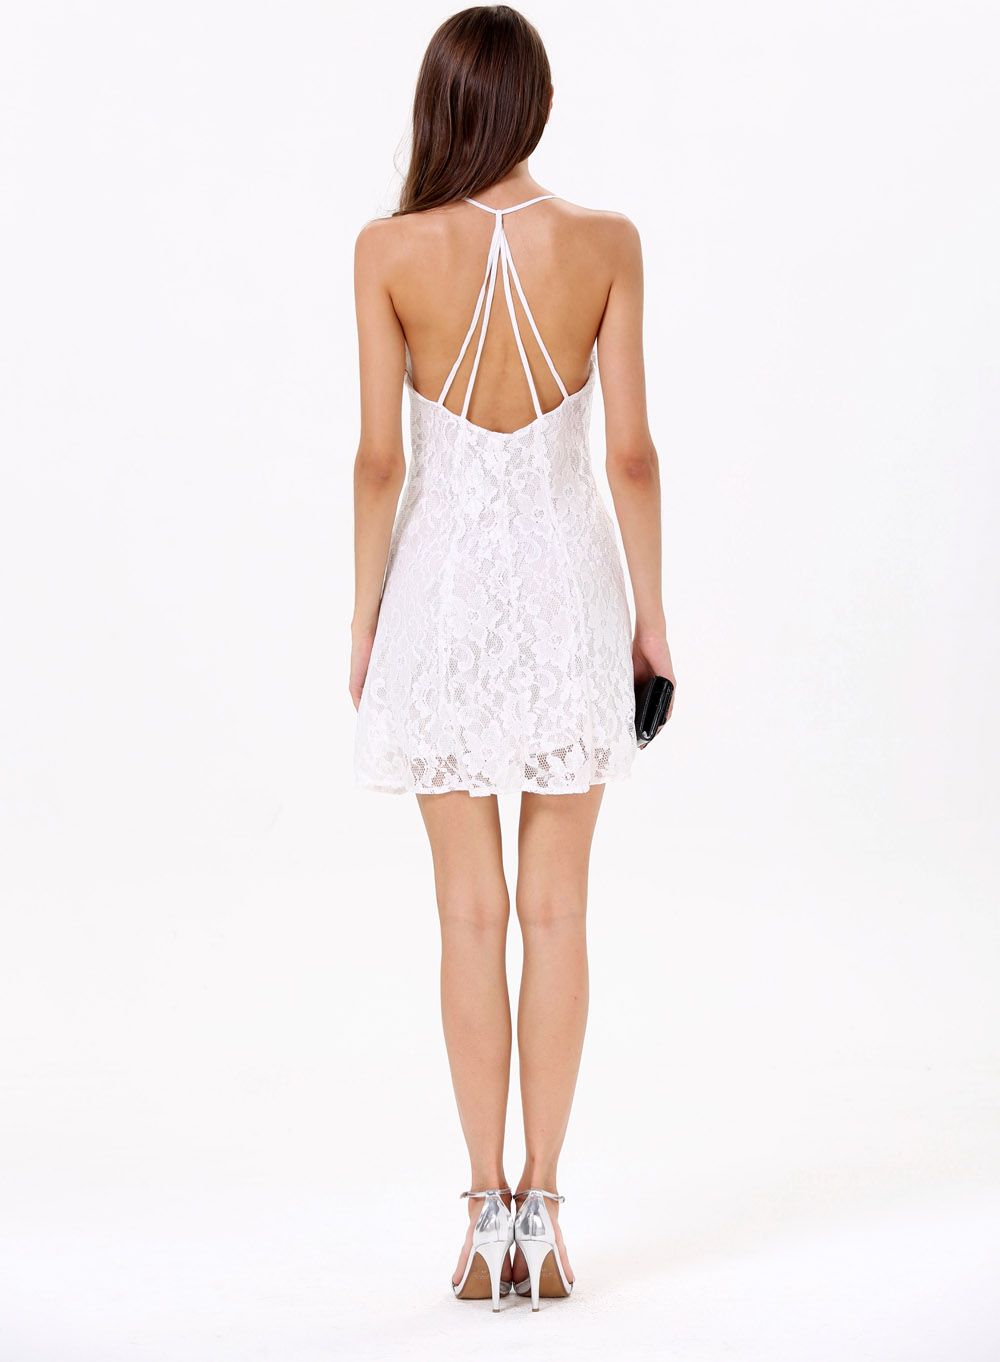 White Criss Cross Embroidered Double Layers Dress - Sheinside.com